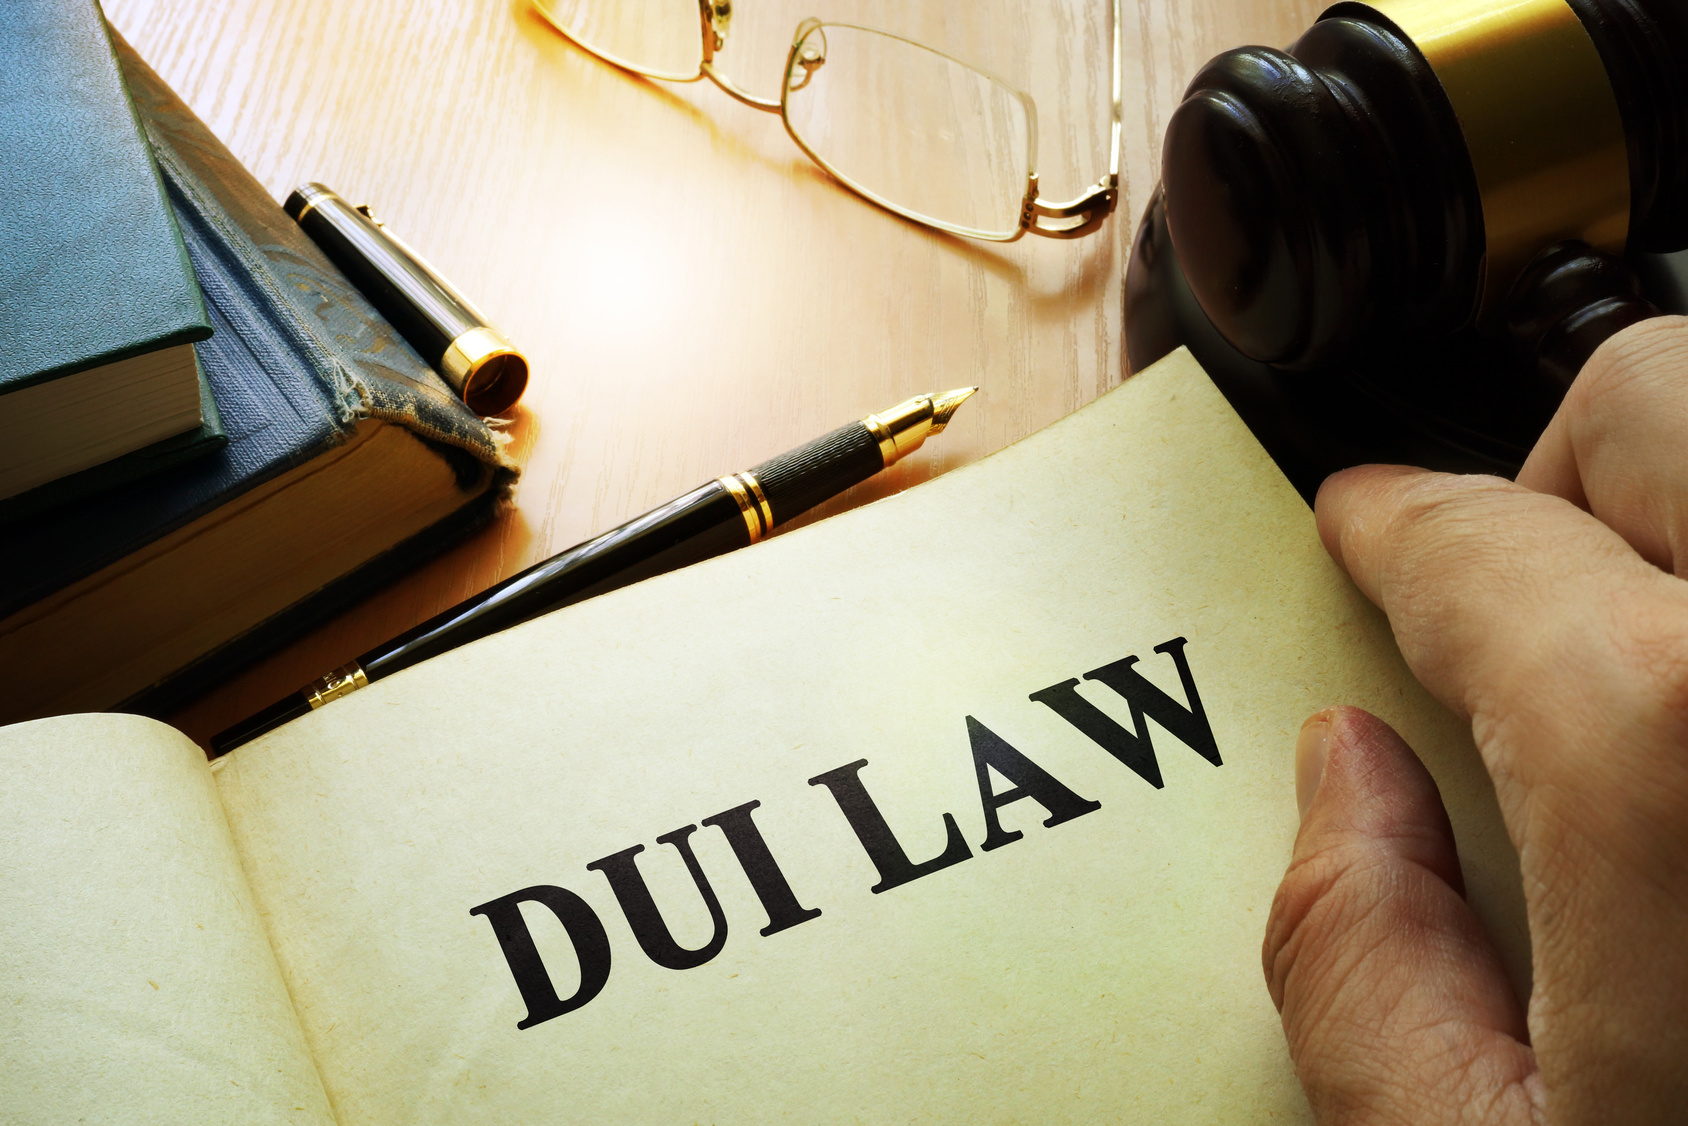 Consulting DUI lawyers